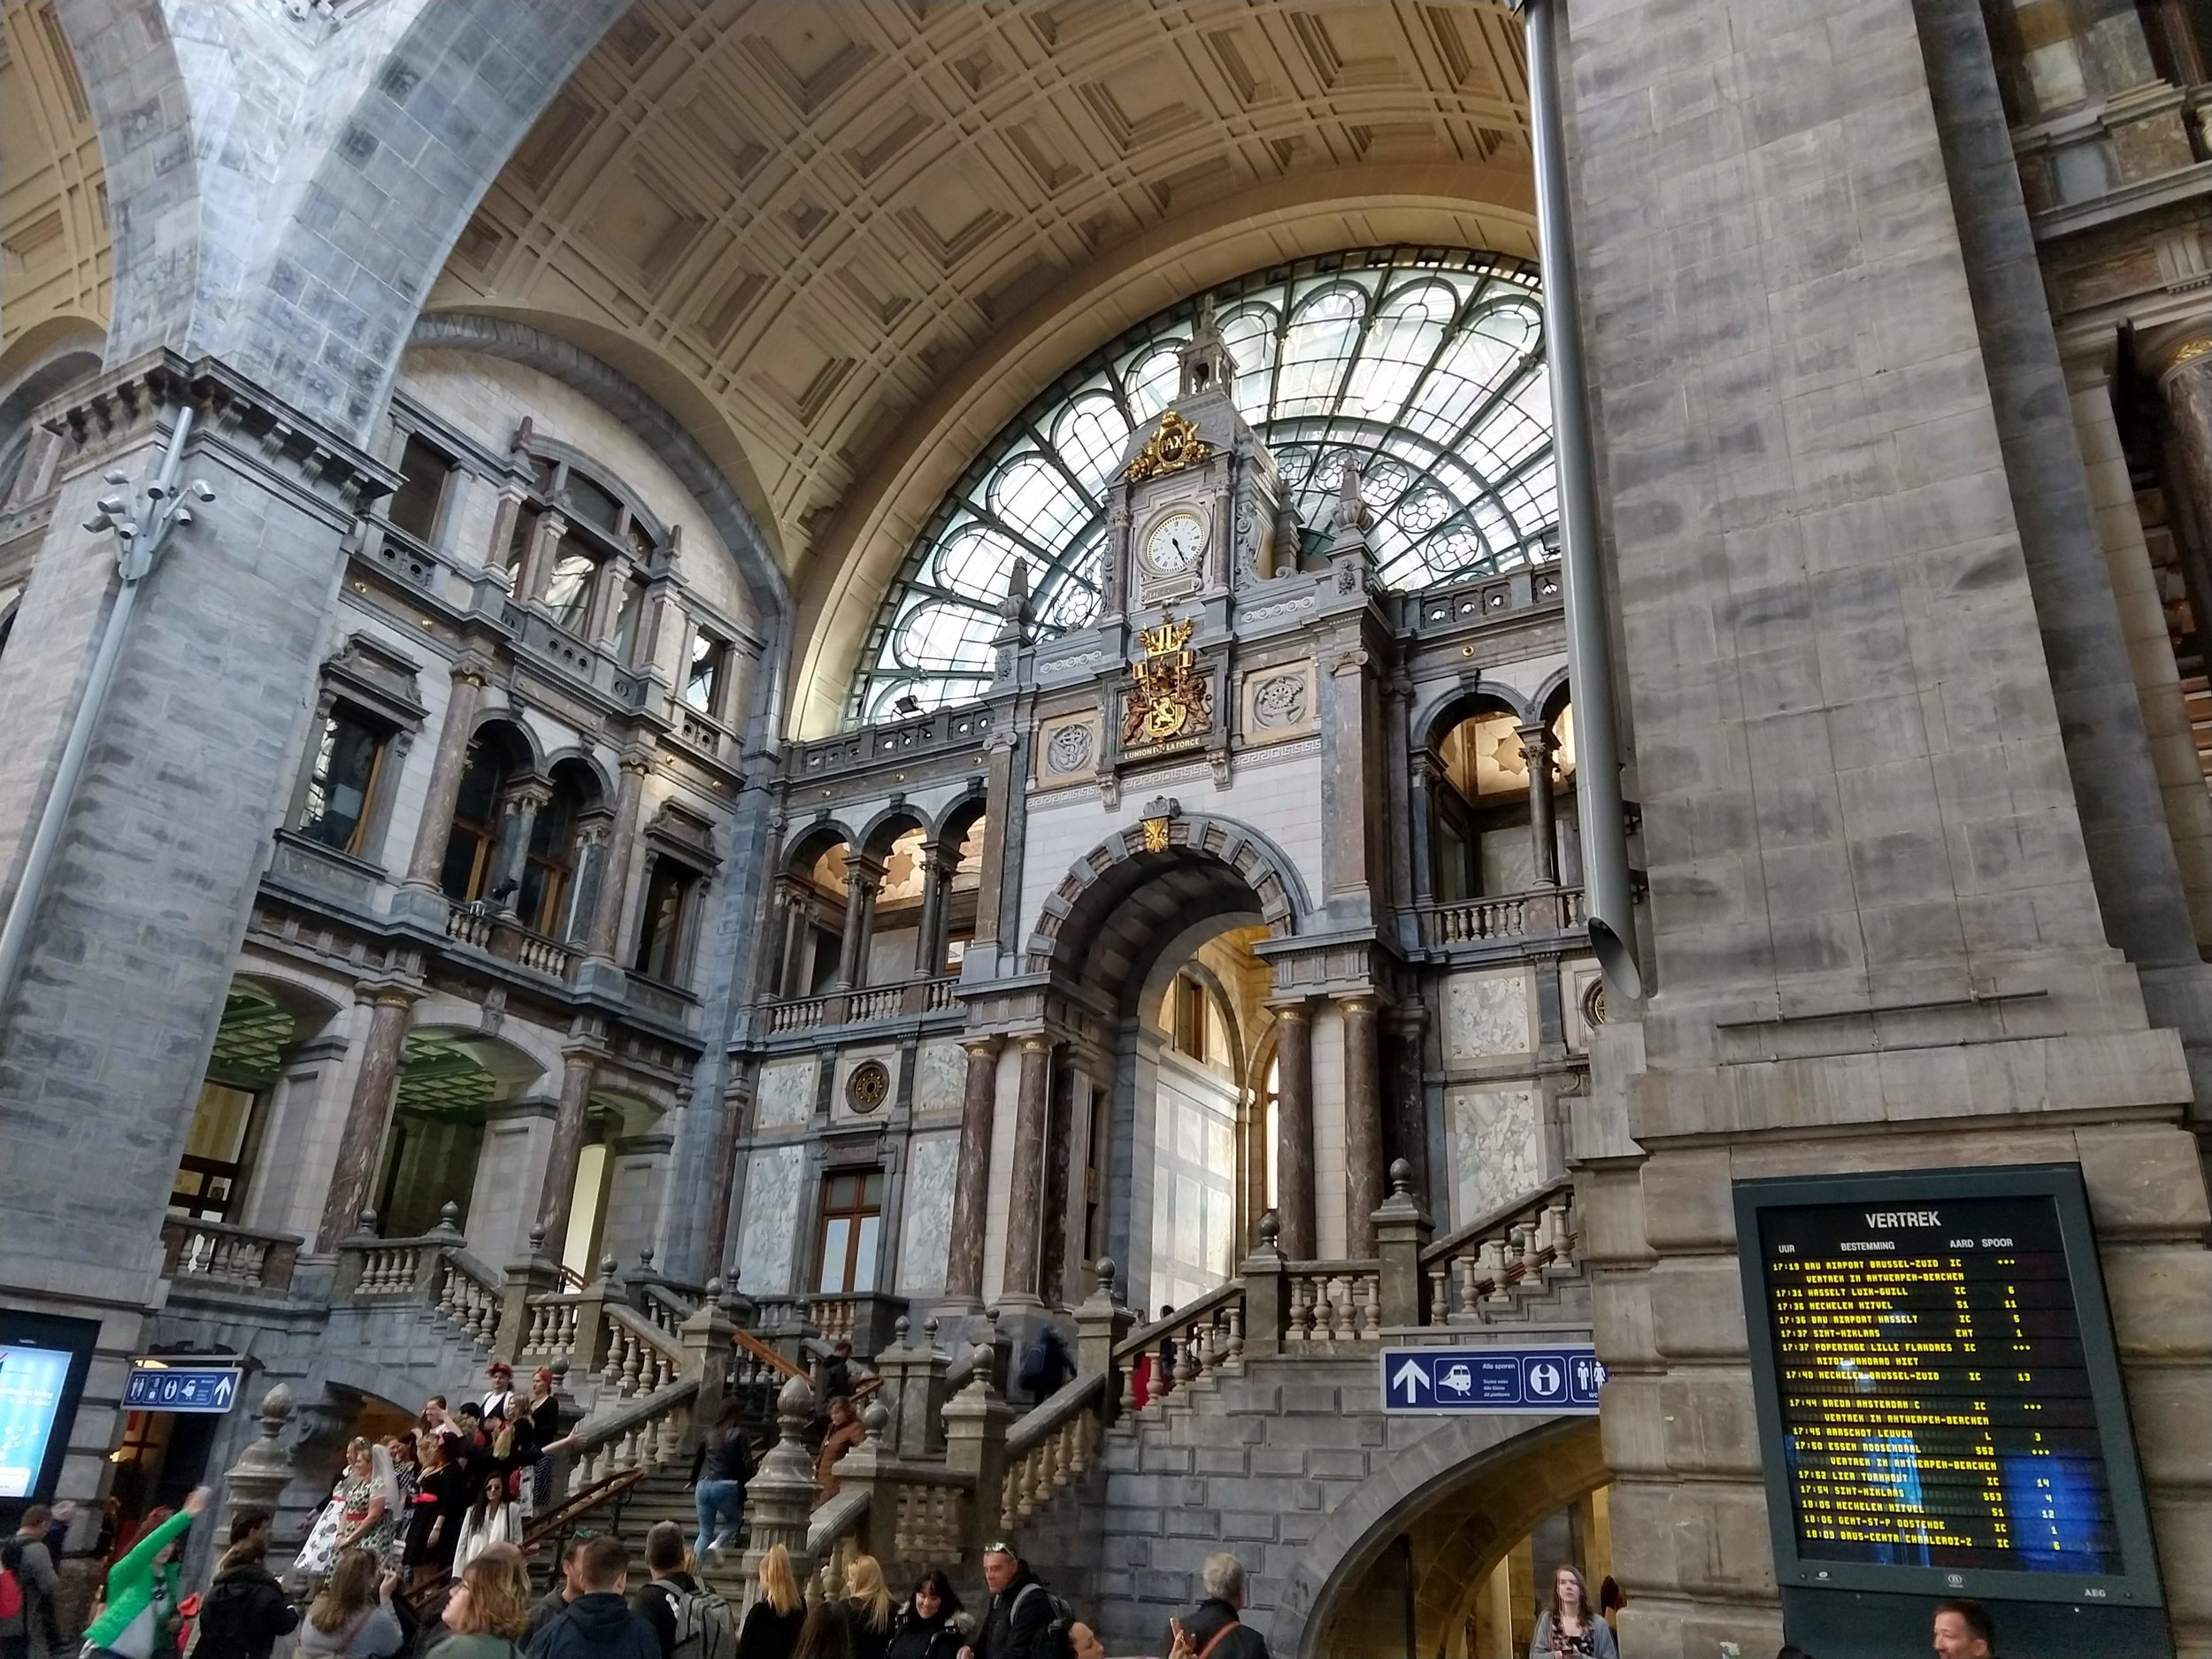 There's some sort of nostalgic romance in train stations. Antwerp's is gorgeous and worth dropping in just to take pictures (as the hen party on the stairs was doing).